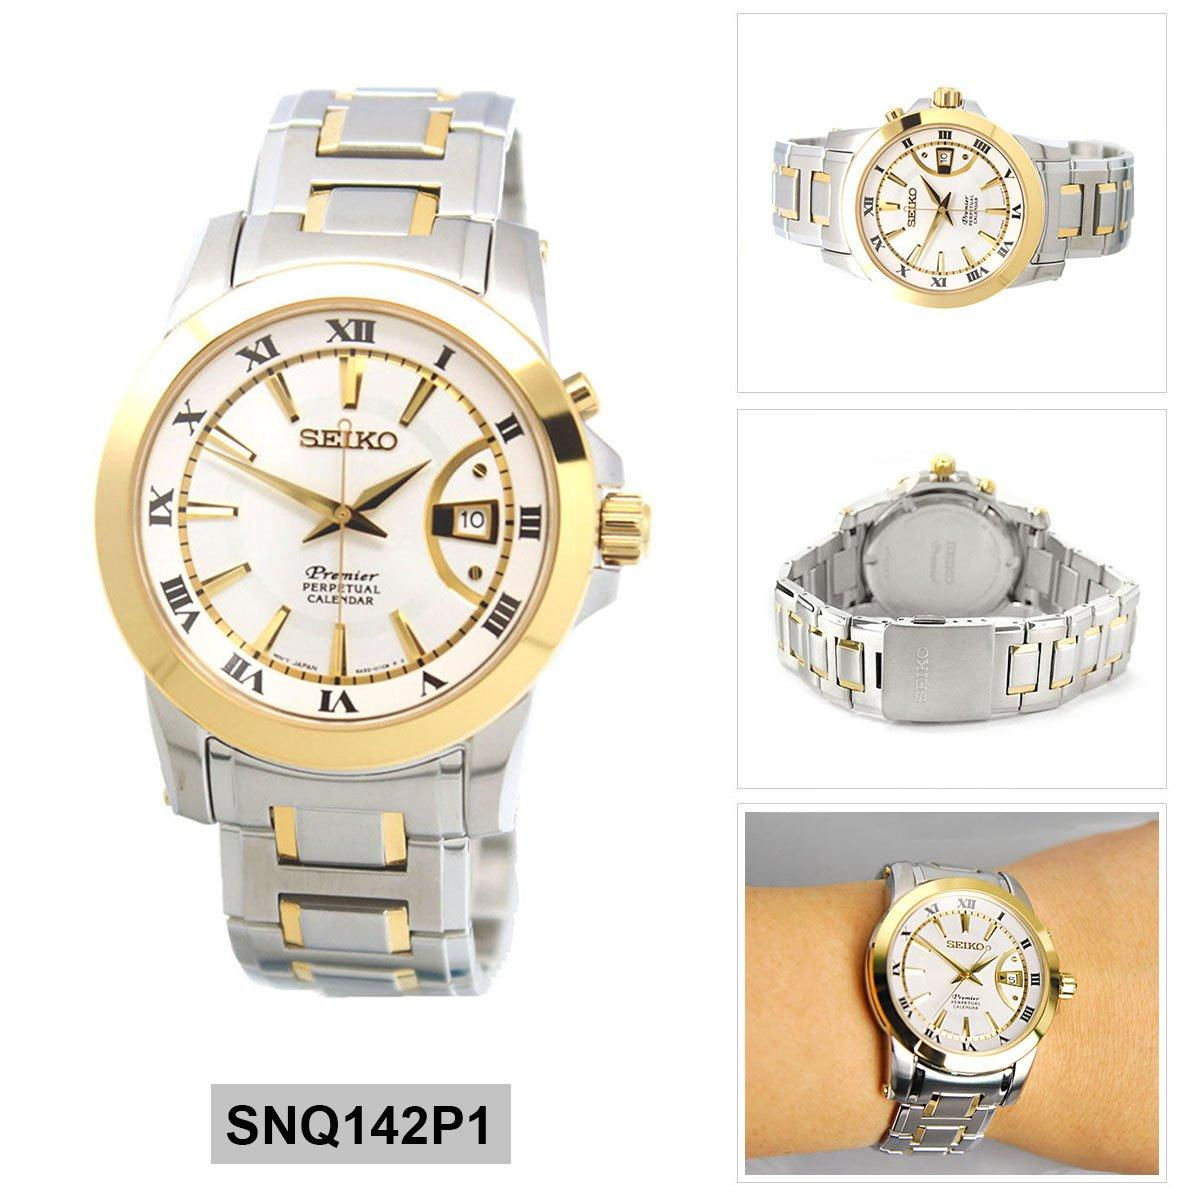 Best Deal Seiko Watch Premier Perpetual Calender Multicolored Stainless Steel Case Two Tone Stainless Steel Bracelet Mens Snq142P1